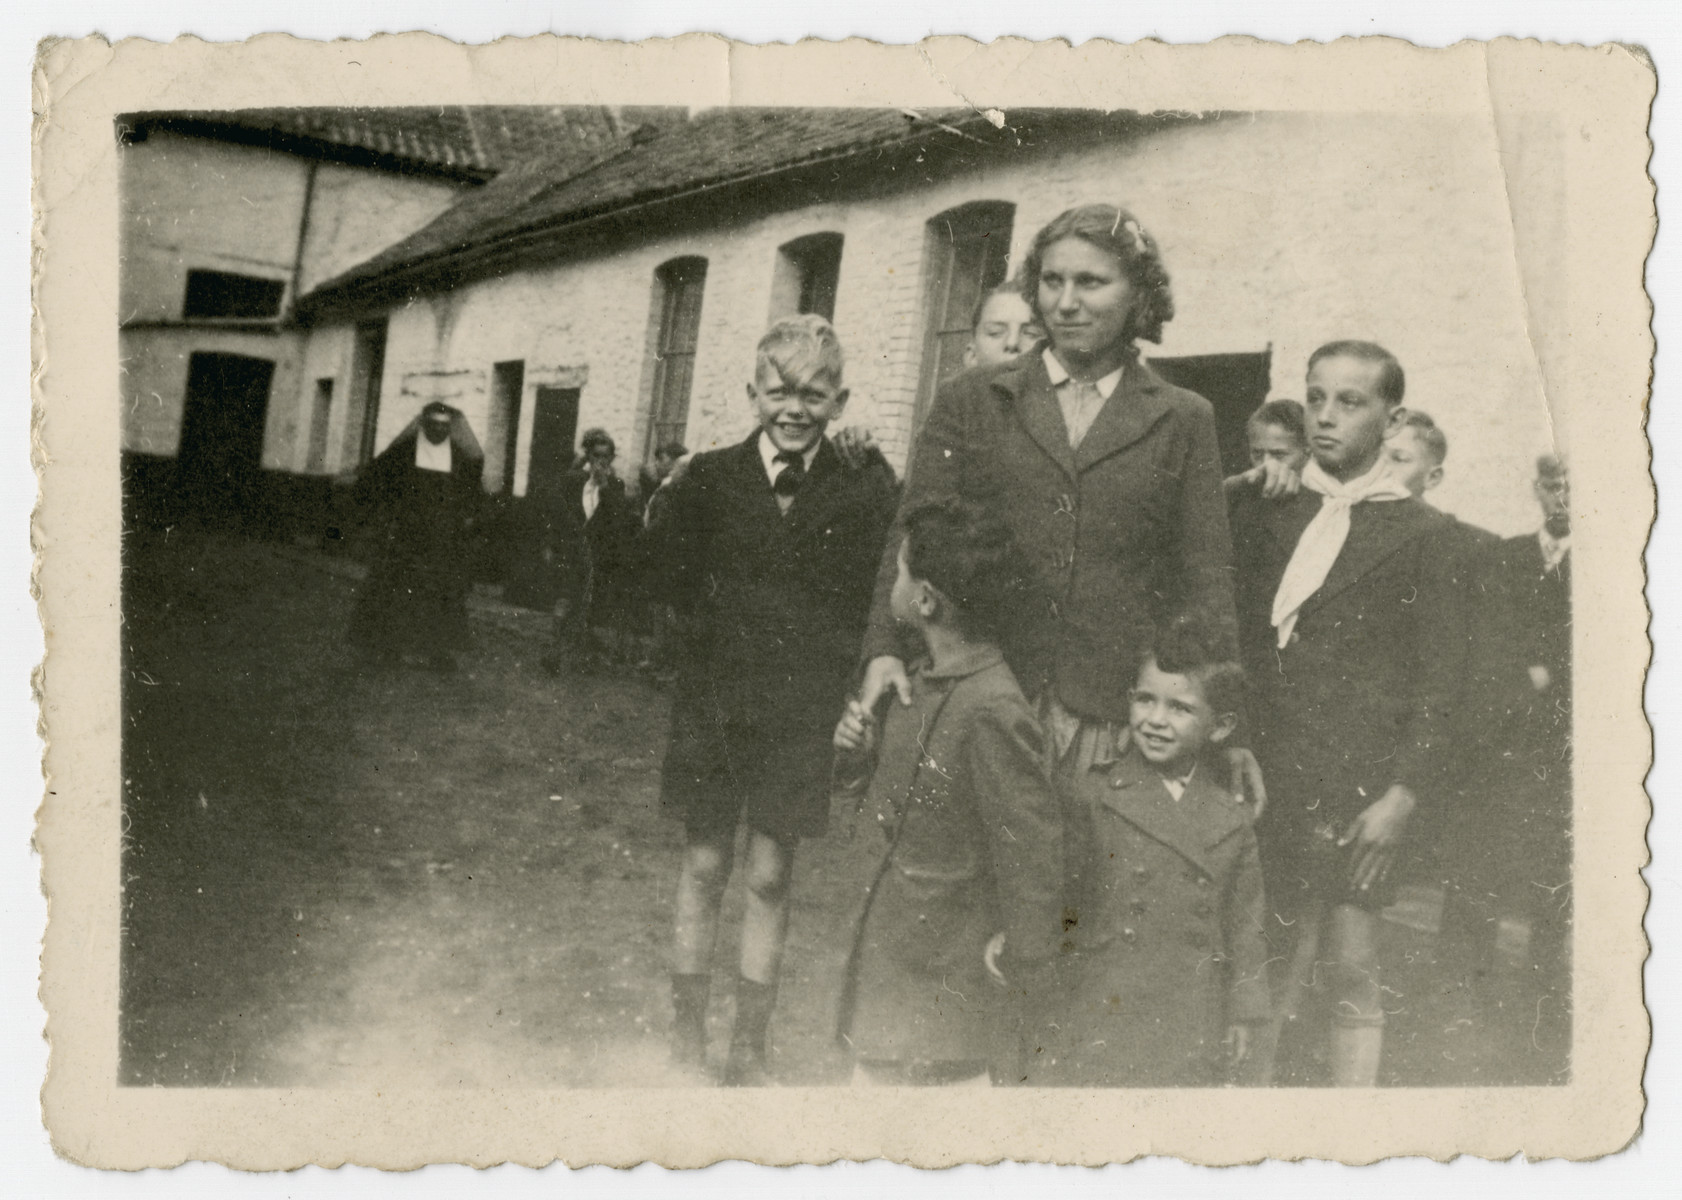 Two Jewish brothers stand in front of the Polish maid who is hiding them in the Belgian countryside.    Pictured are Nestor (right) and Jacques Hochglaube (left).